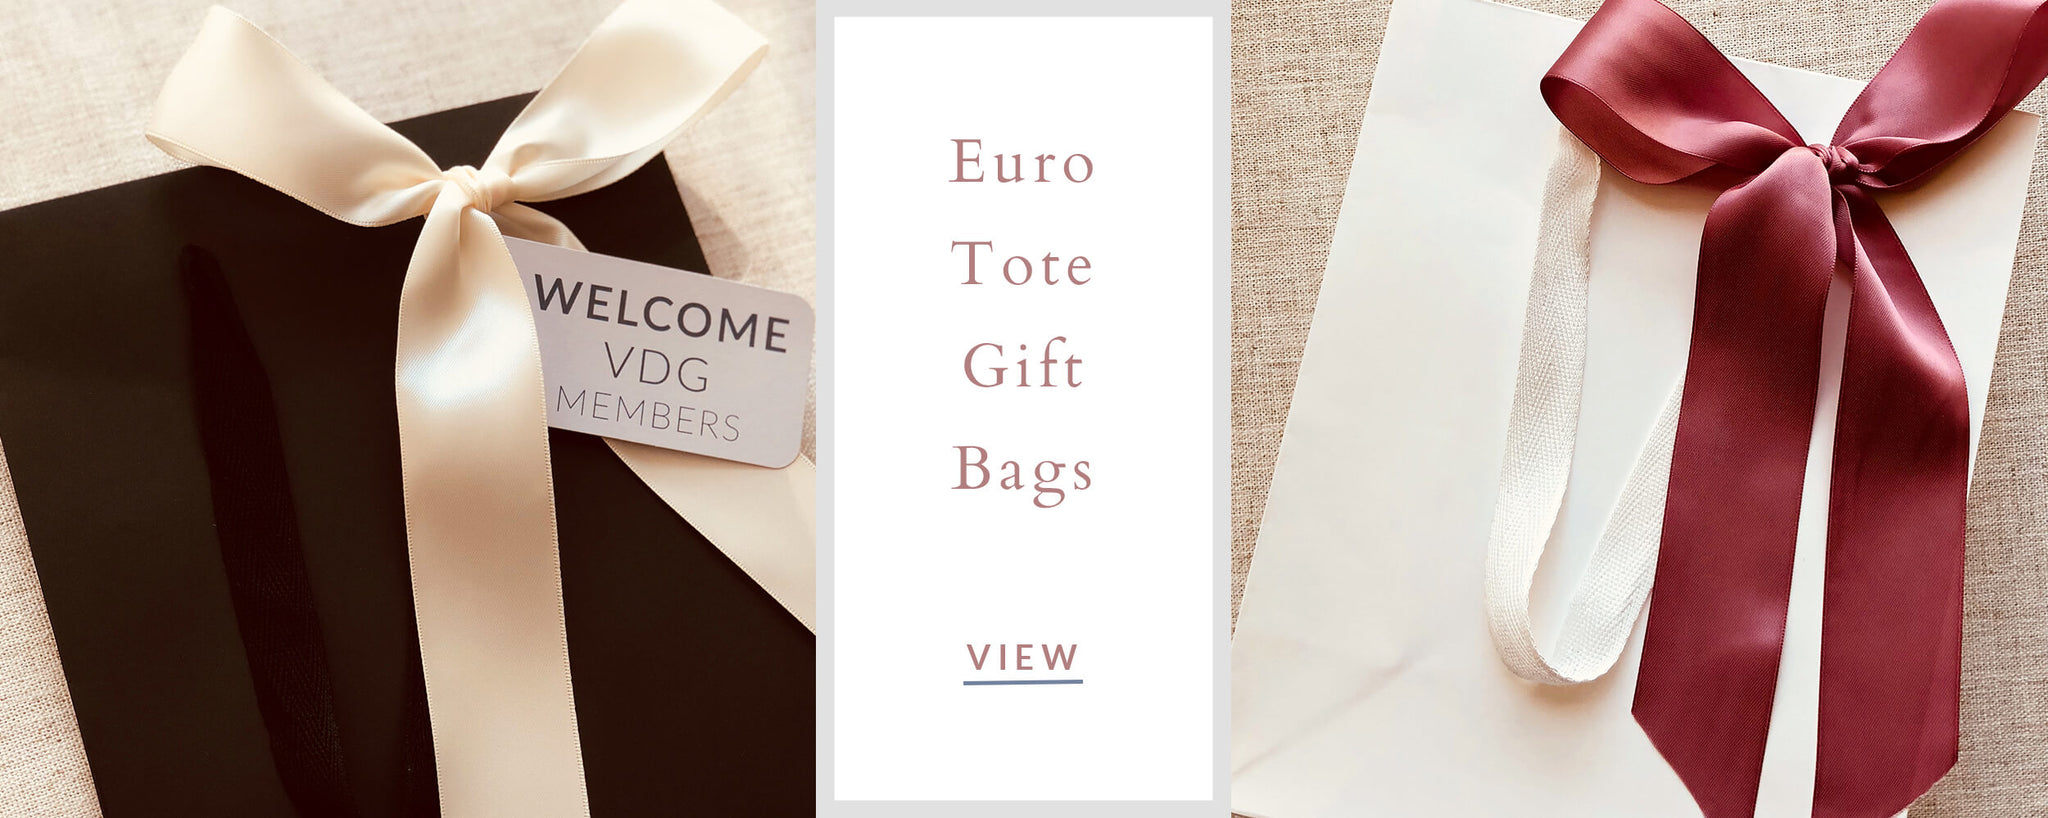 Corporate Custom Gifts - Euro Tote Gift Bags